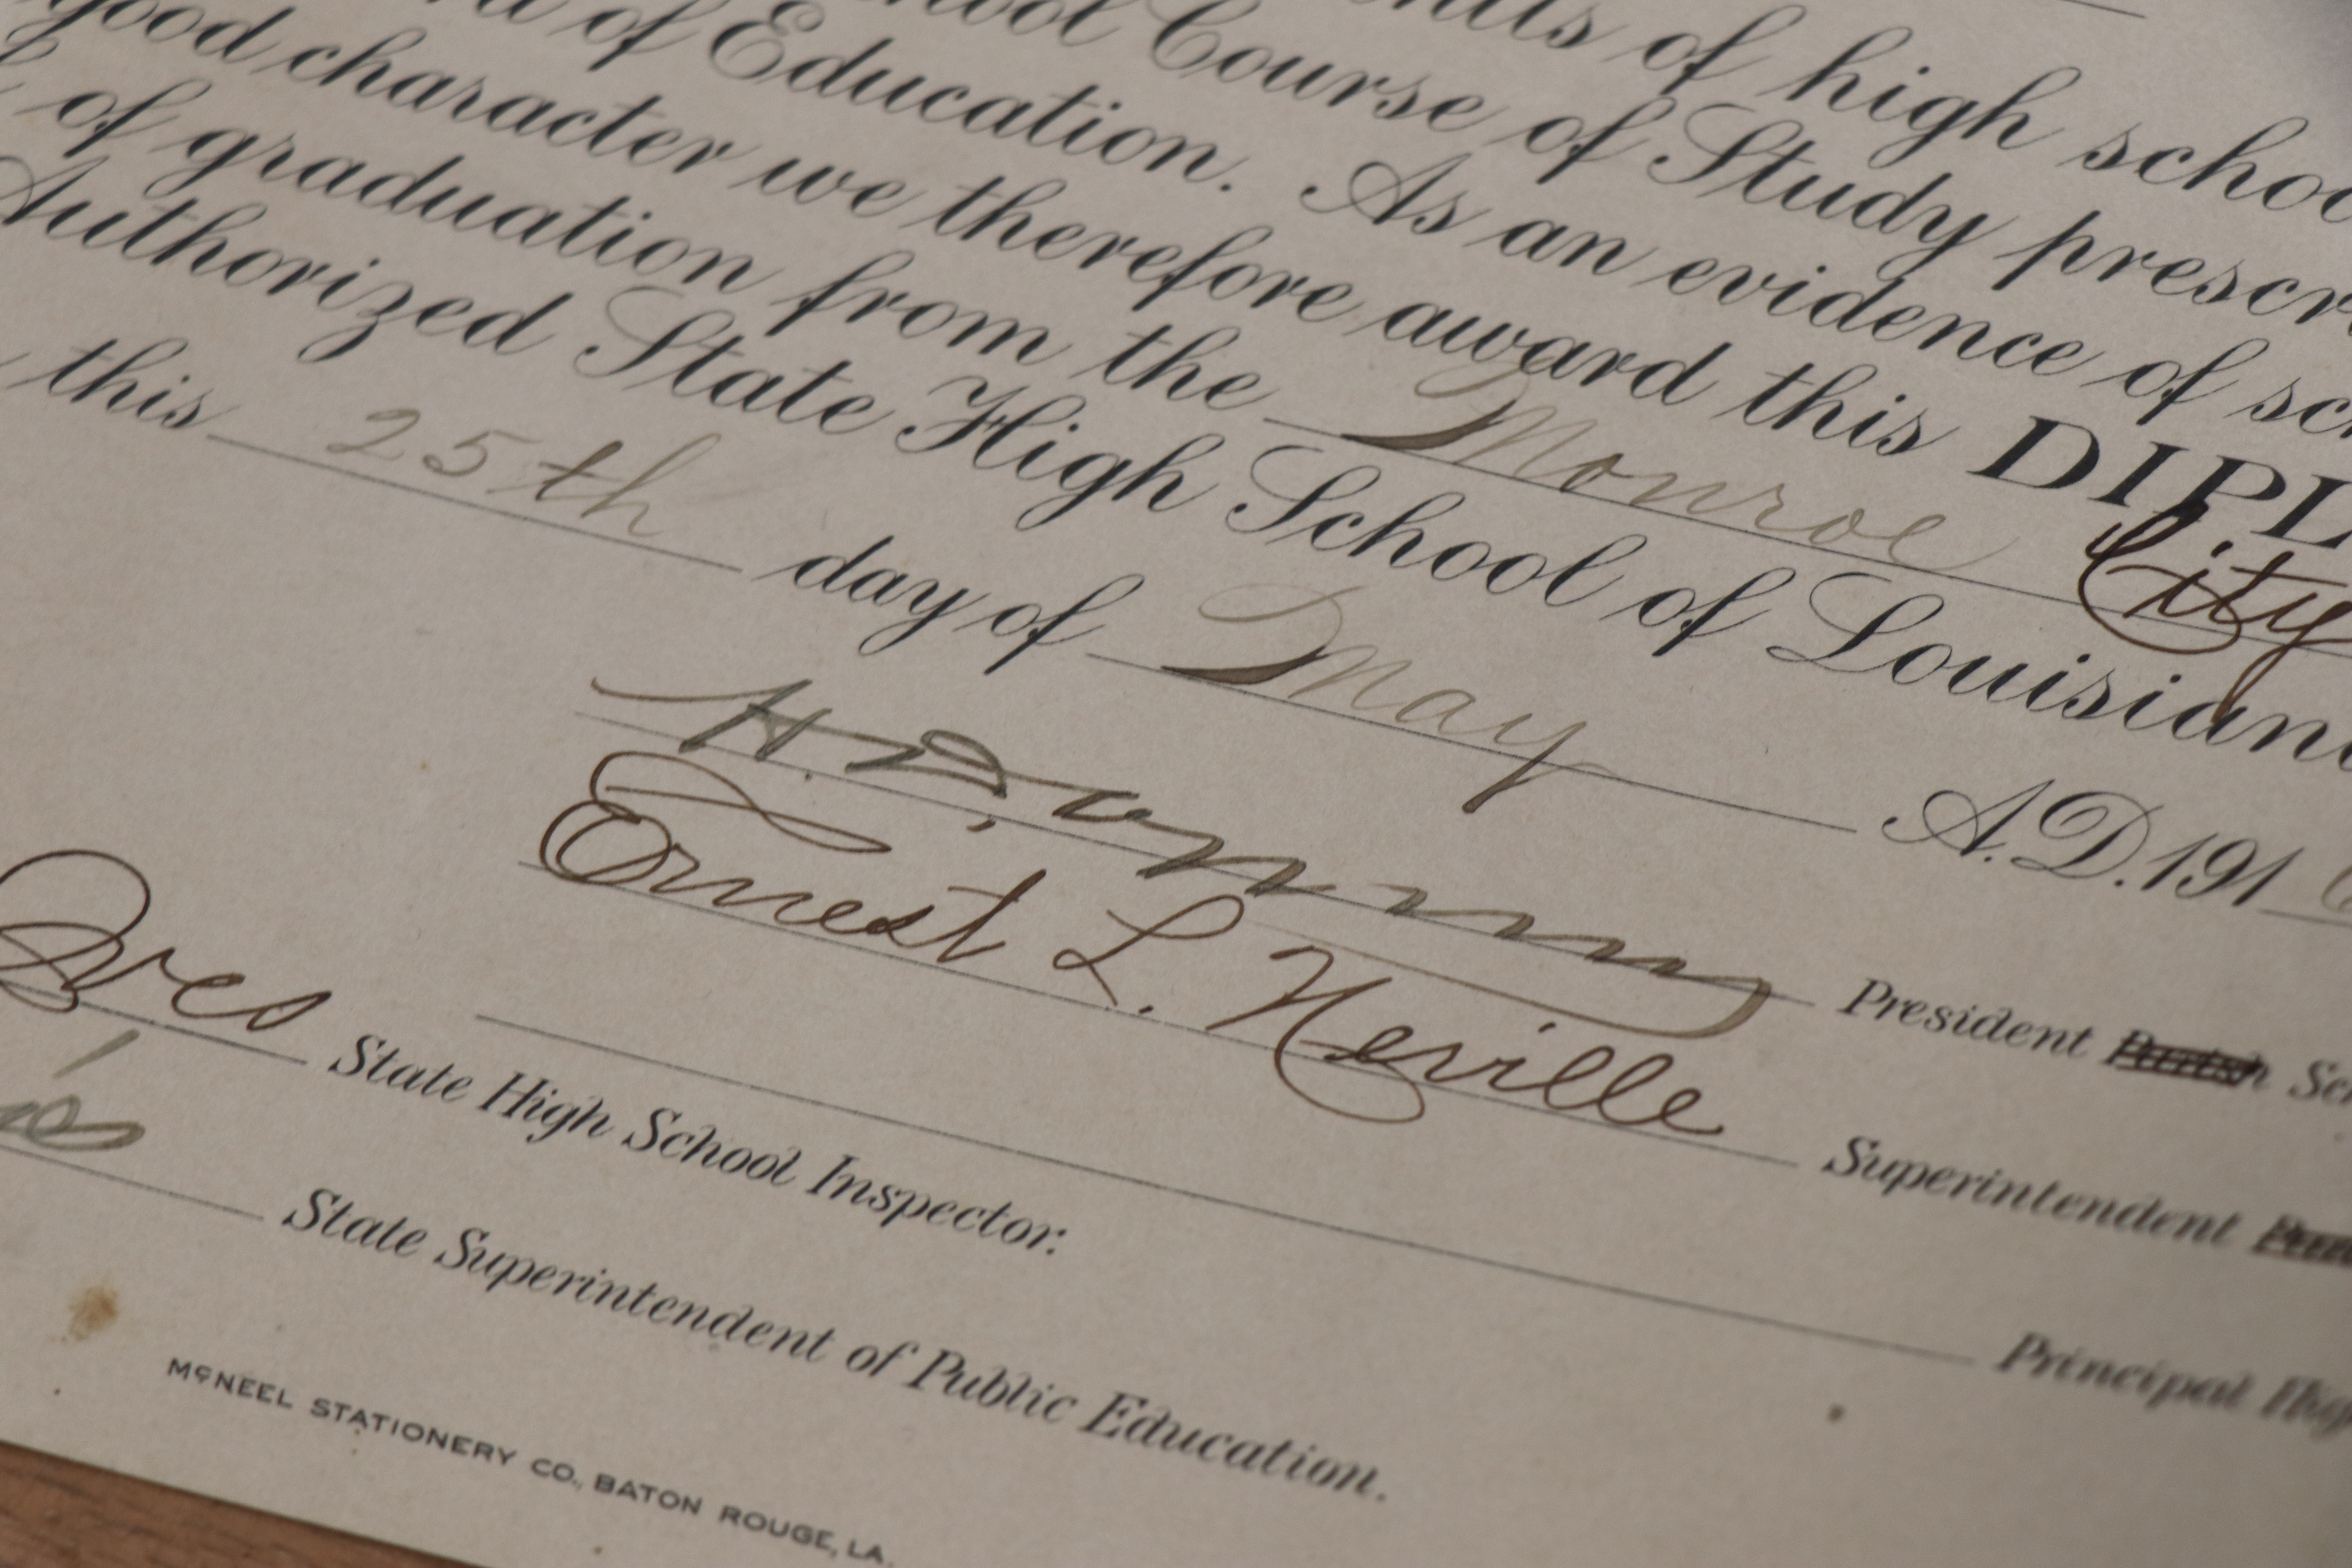 A high school diploma featuring Ernest L. Neville's signature